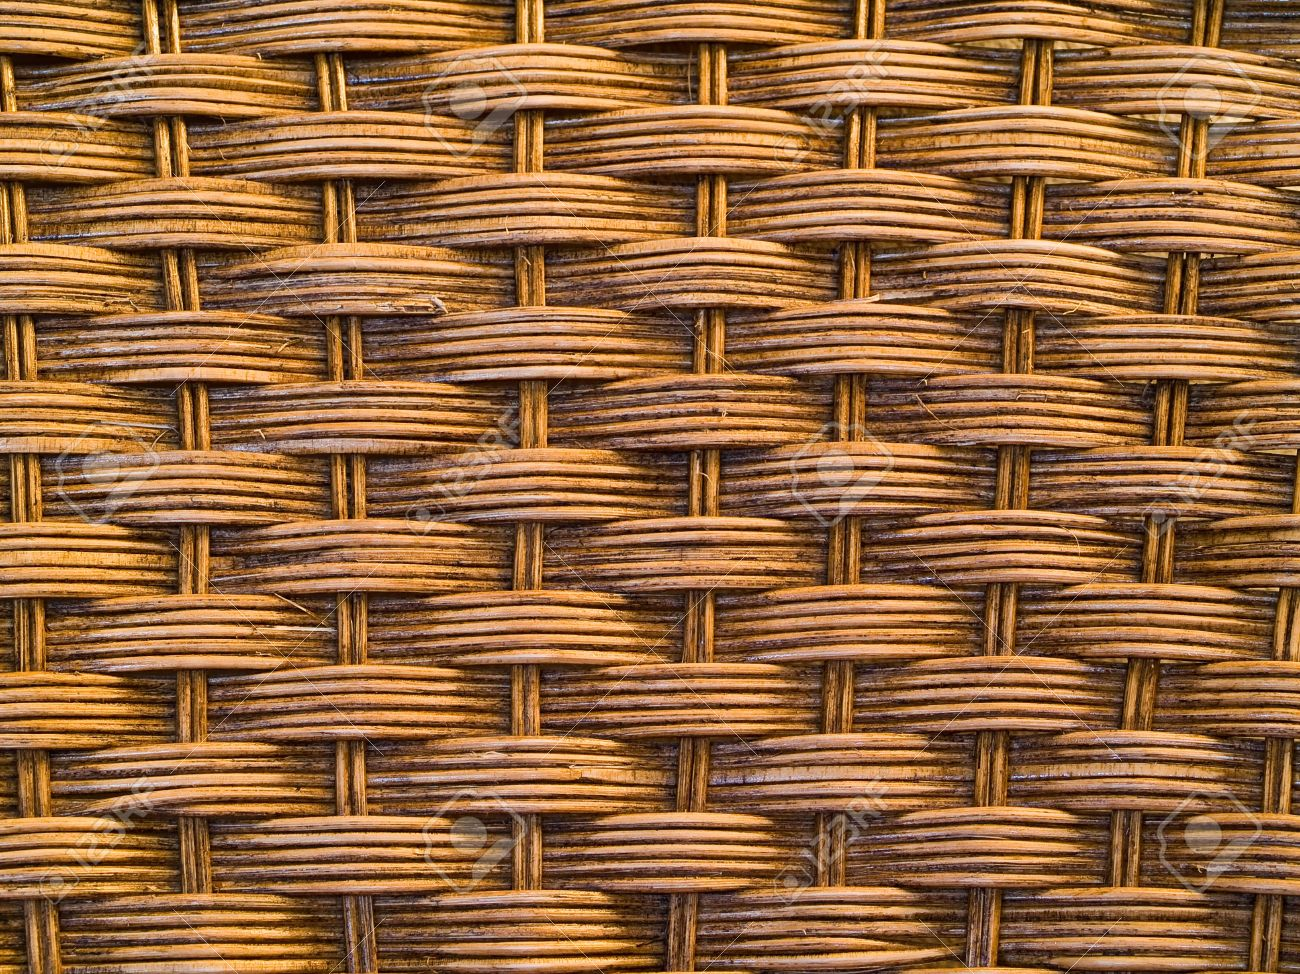 Woven wicker or chair texture for background uses Stock Photo - 6338719